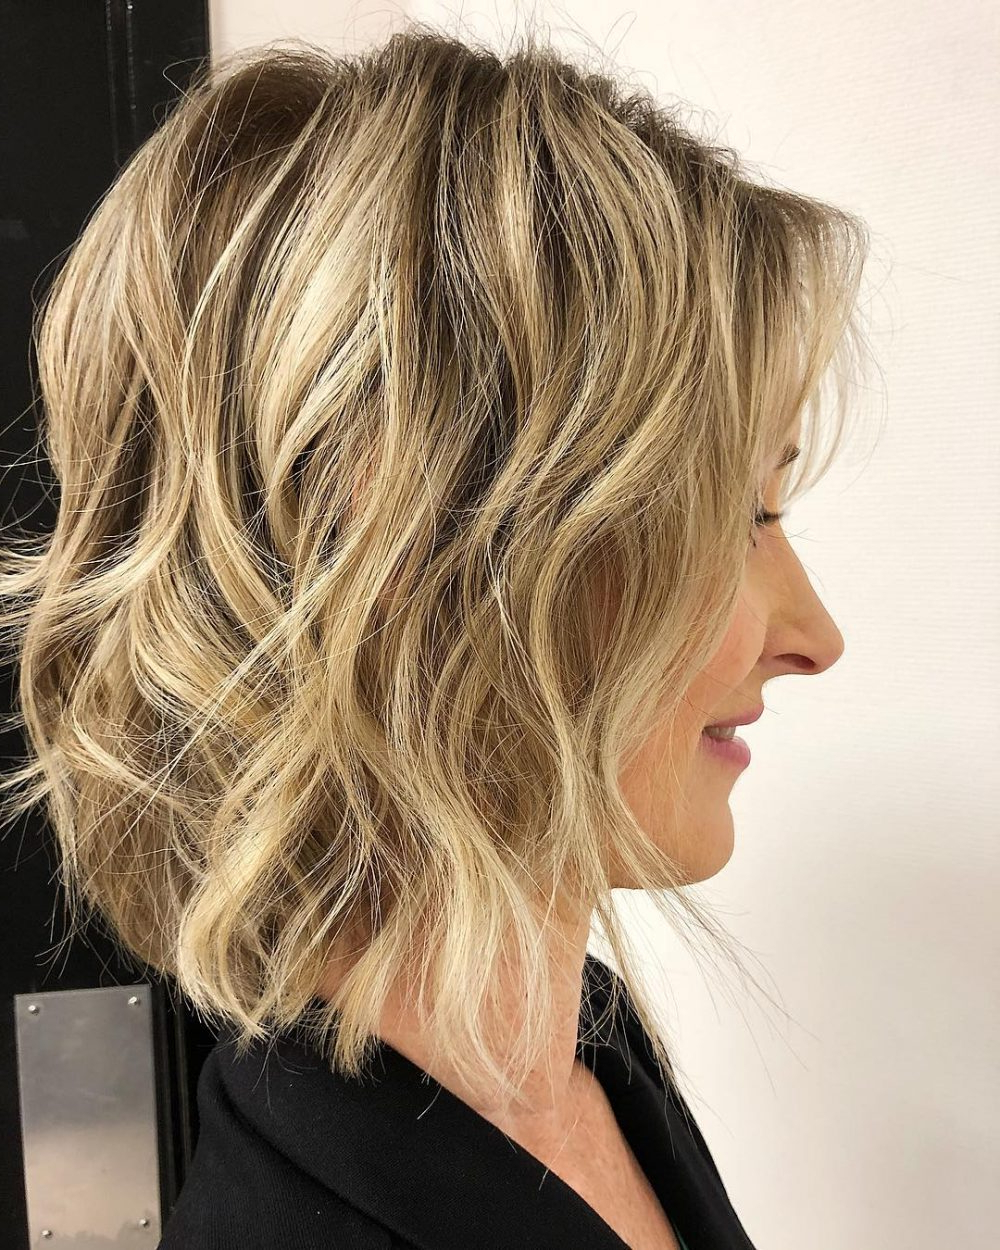 43 Perfect Short Hairstyles For Fine Hair In 2018 In Feathered Pixie Hairstyles For Thin Hair (View 11 of 20)